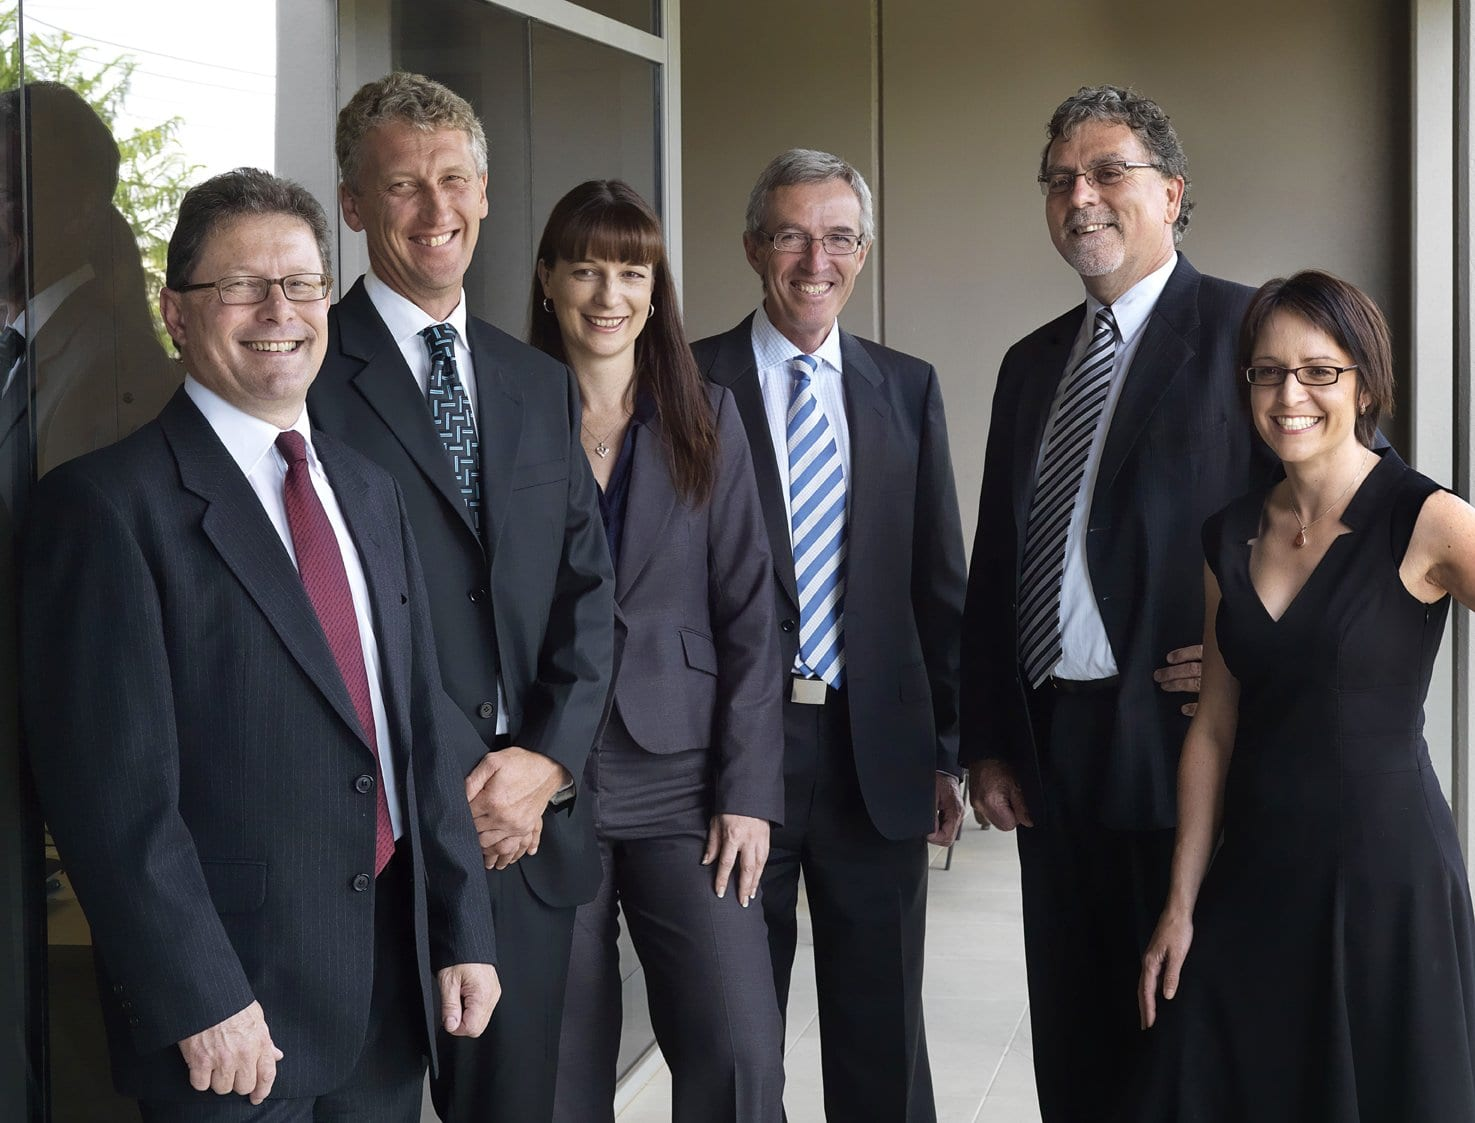 https://www.mbmgroup.com.au/wp-content/uploads/2016/10/Partners-Circa-2008.jpg